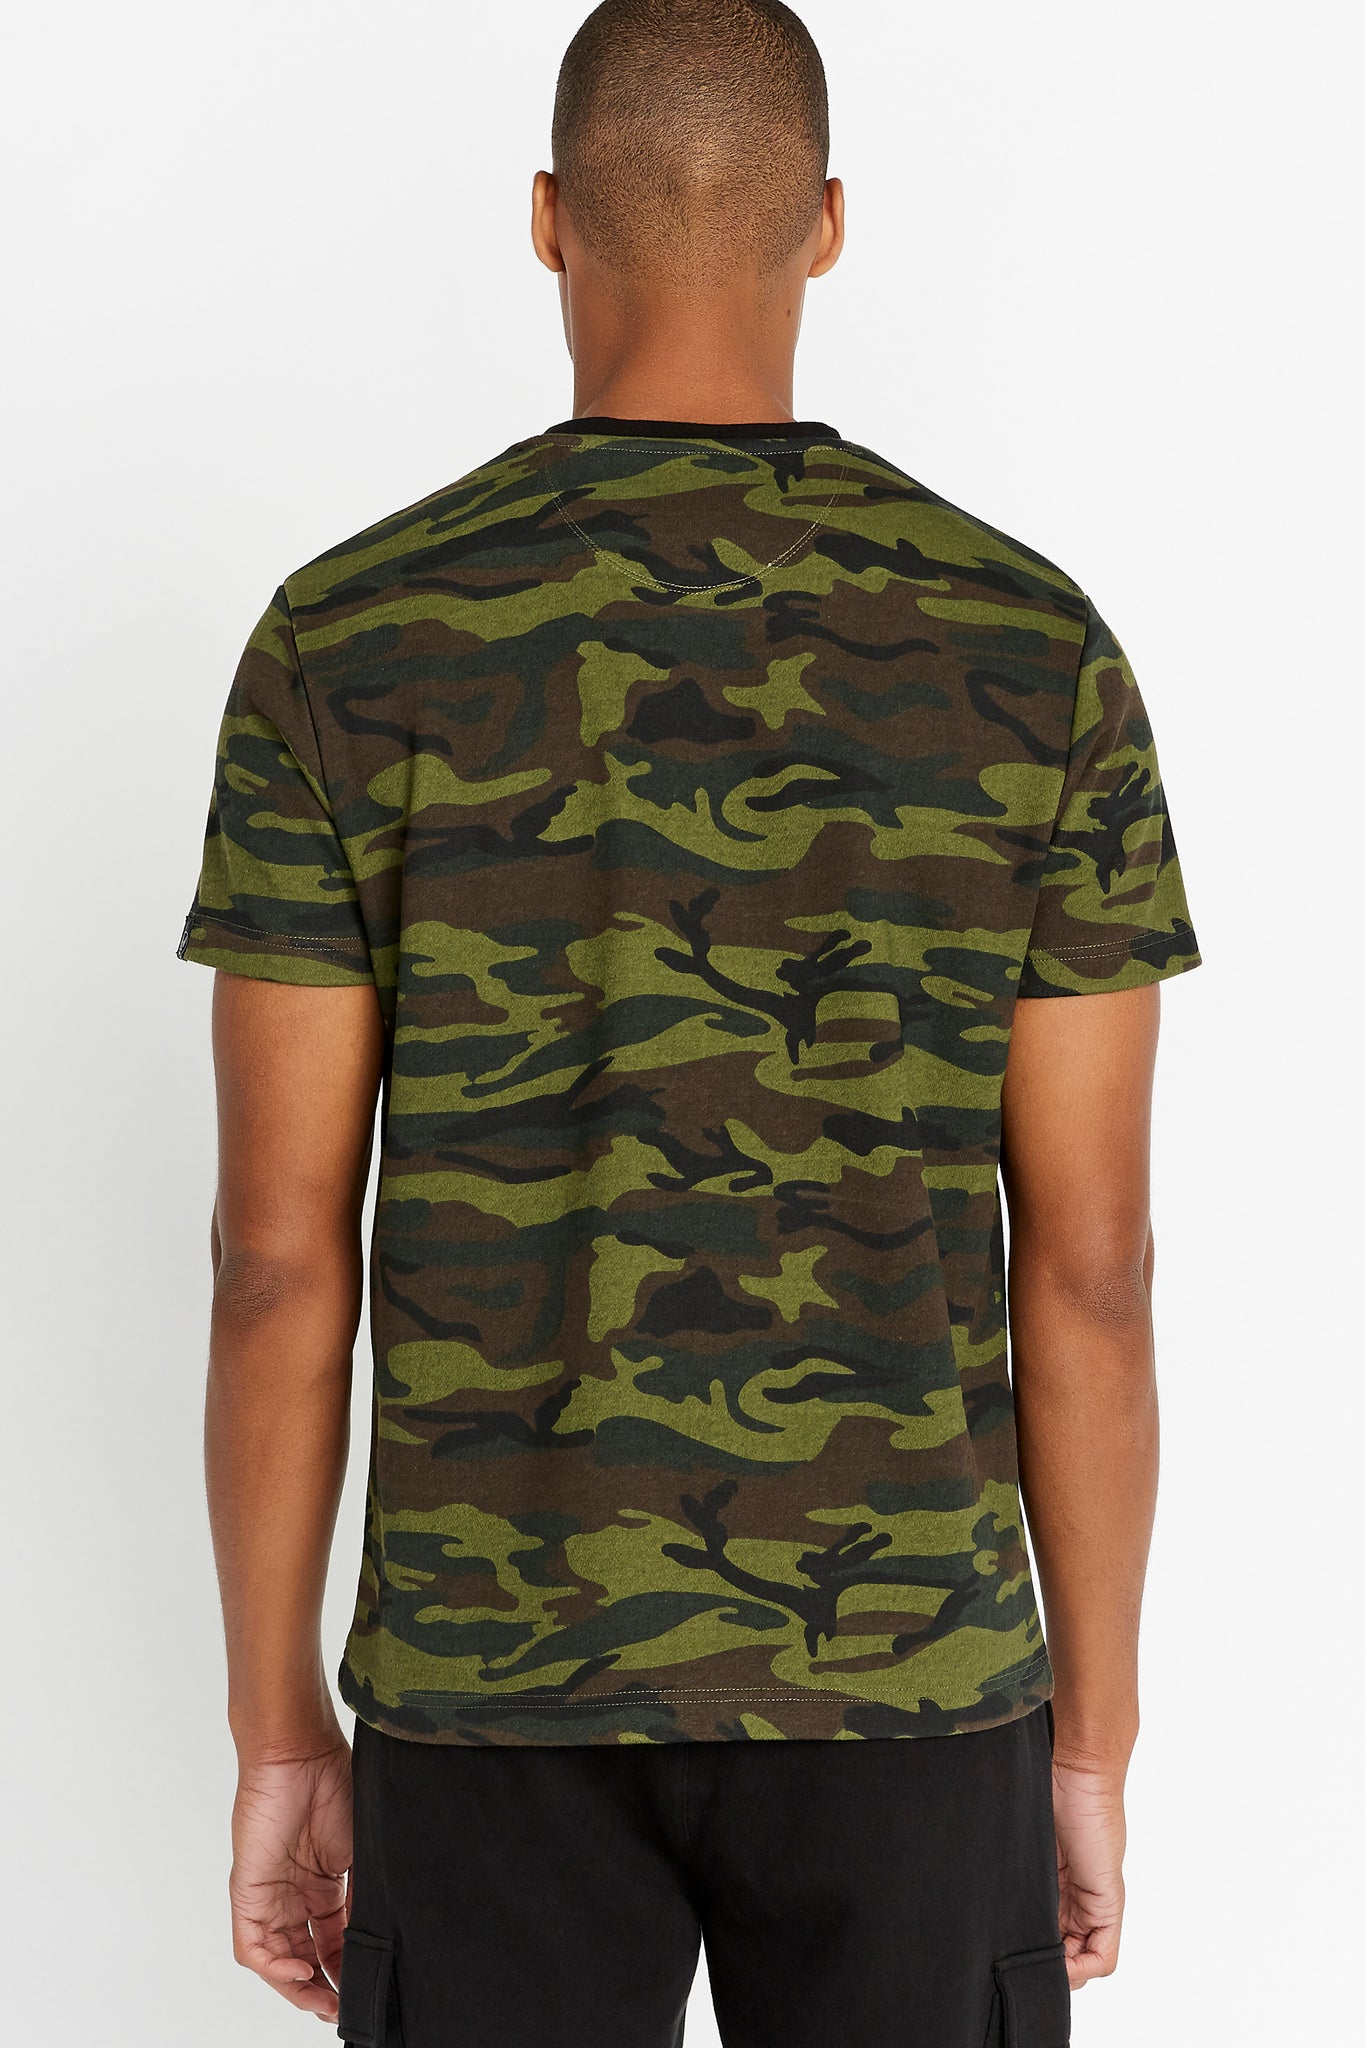 Back view of men wearing a camo print short sleeve crew T-shirt